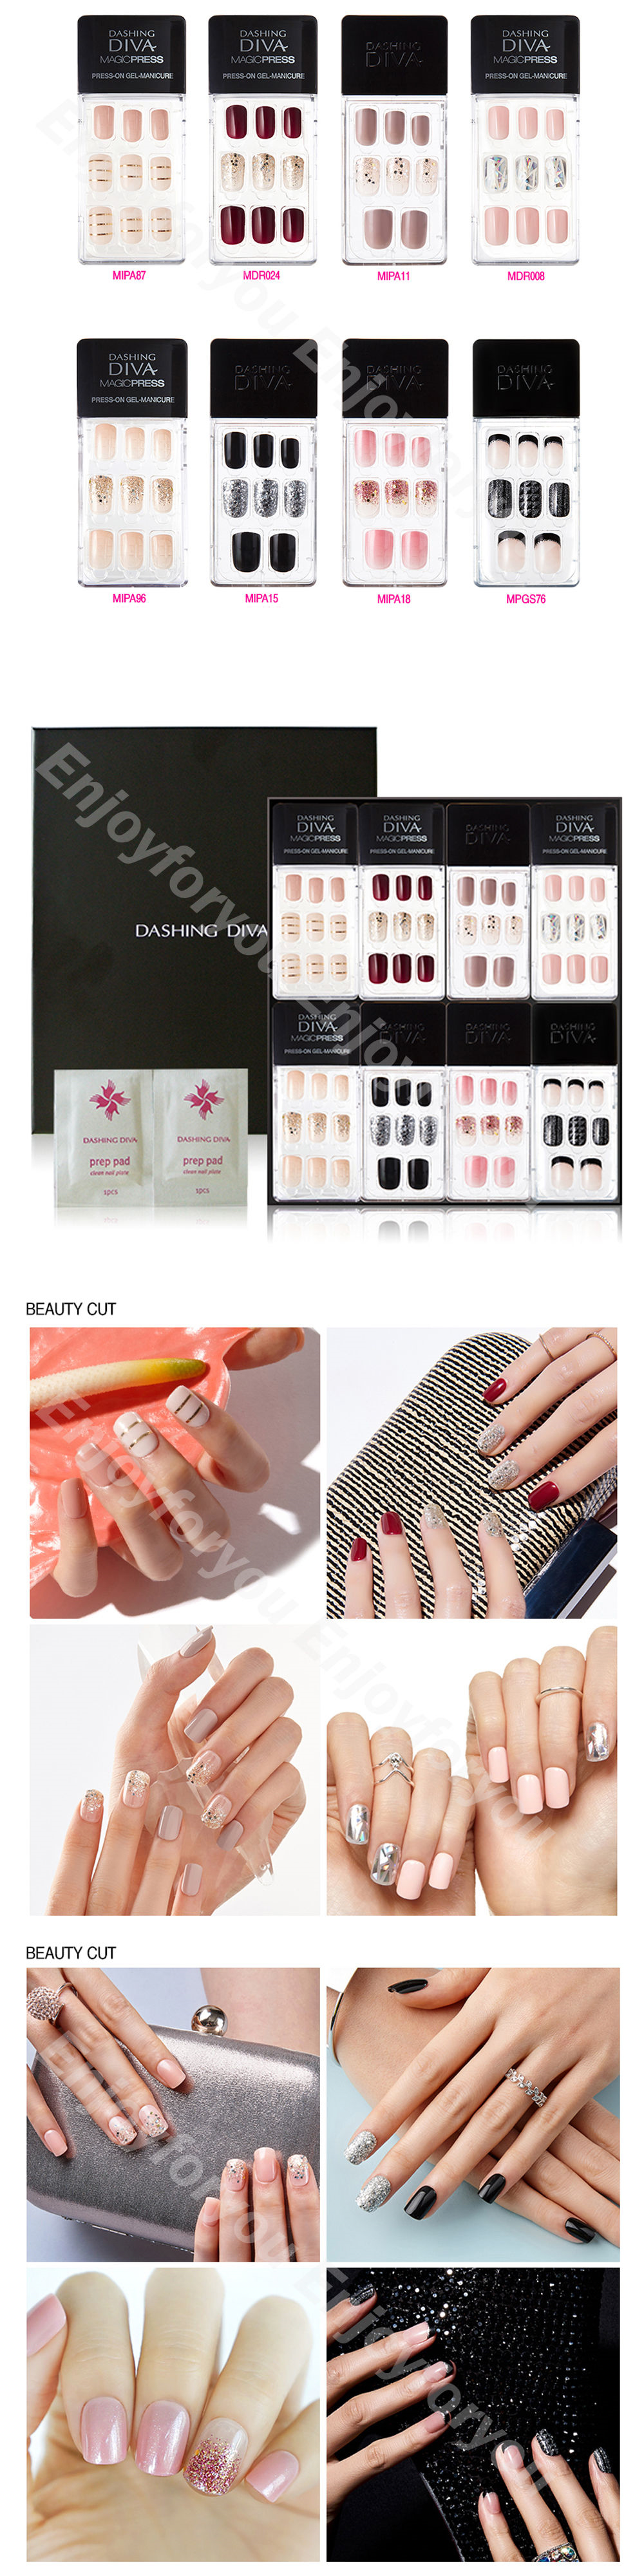 Artificial Nail Tips: Dashing Diva 1 Second Nail Glitter Bling Point ...